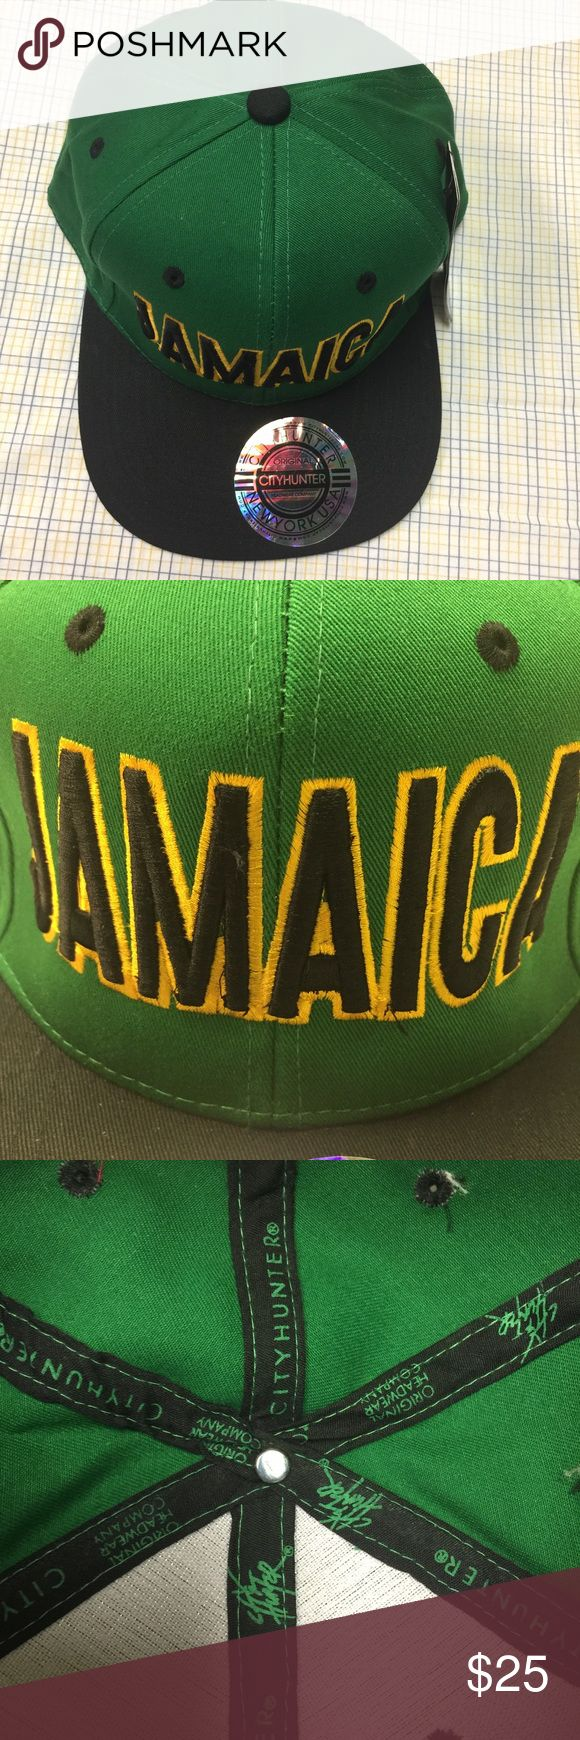 "Jamaica Cap 🇯🇲 Jamaica 🇯🇲 Pro style cap-- Green Crown & Black brim. Embroidered ""Jamaica"" front & ""Flag"" back. 6 small ventilation holes on each panel of crown. Adjustable SnapBack, 100% Cotton. Original City Hunter Headwear company. New with Tags... Jamaica Flag 🇯🇲 represents True Island Love ❤️ City Hunter USA Accessories Hats"